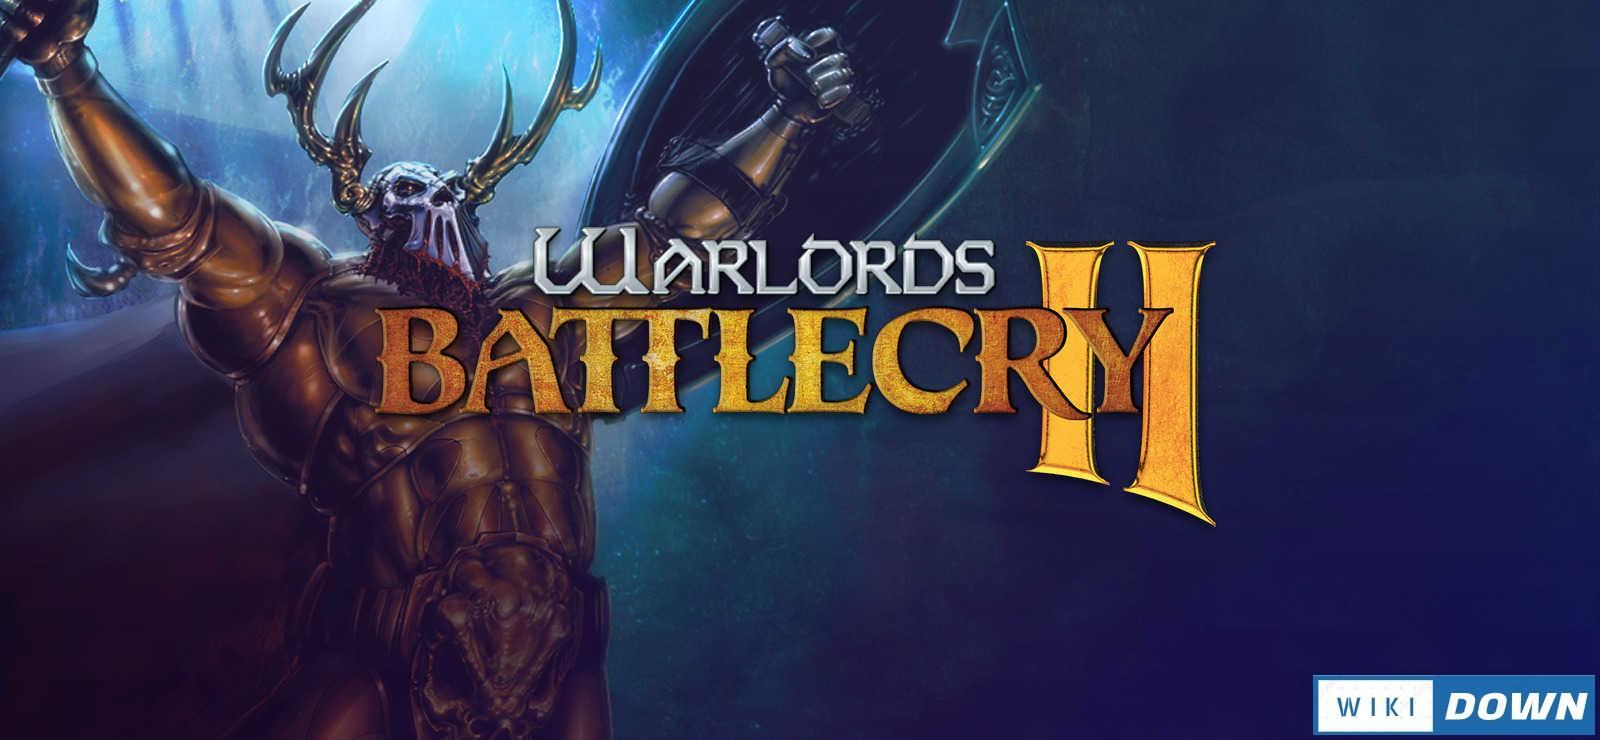 Download WarlLords Battlecry II Mới Nhất